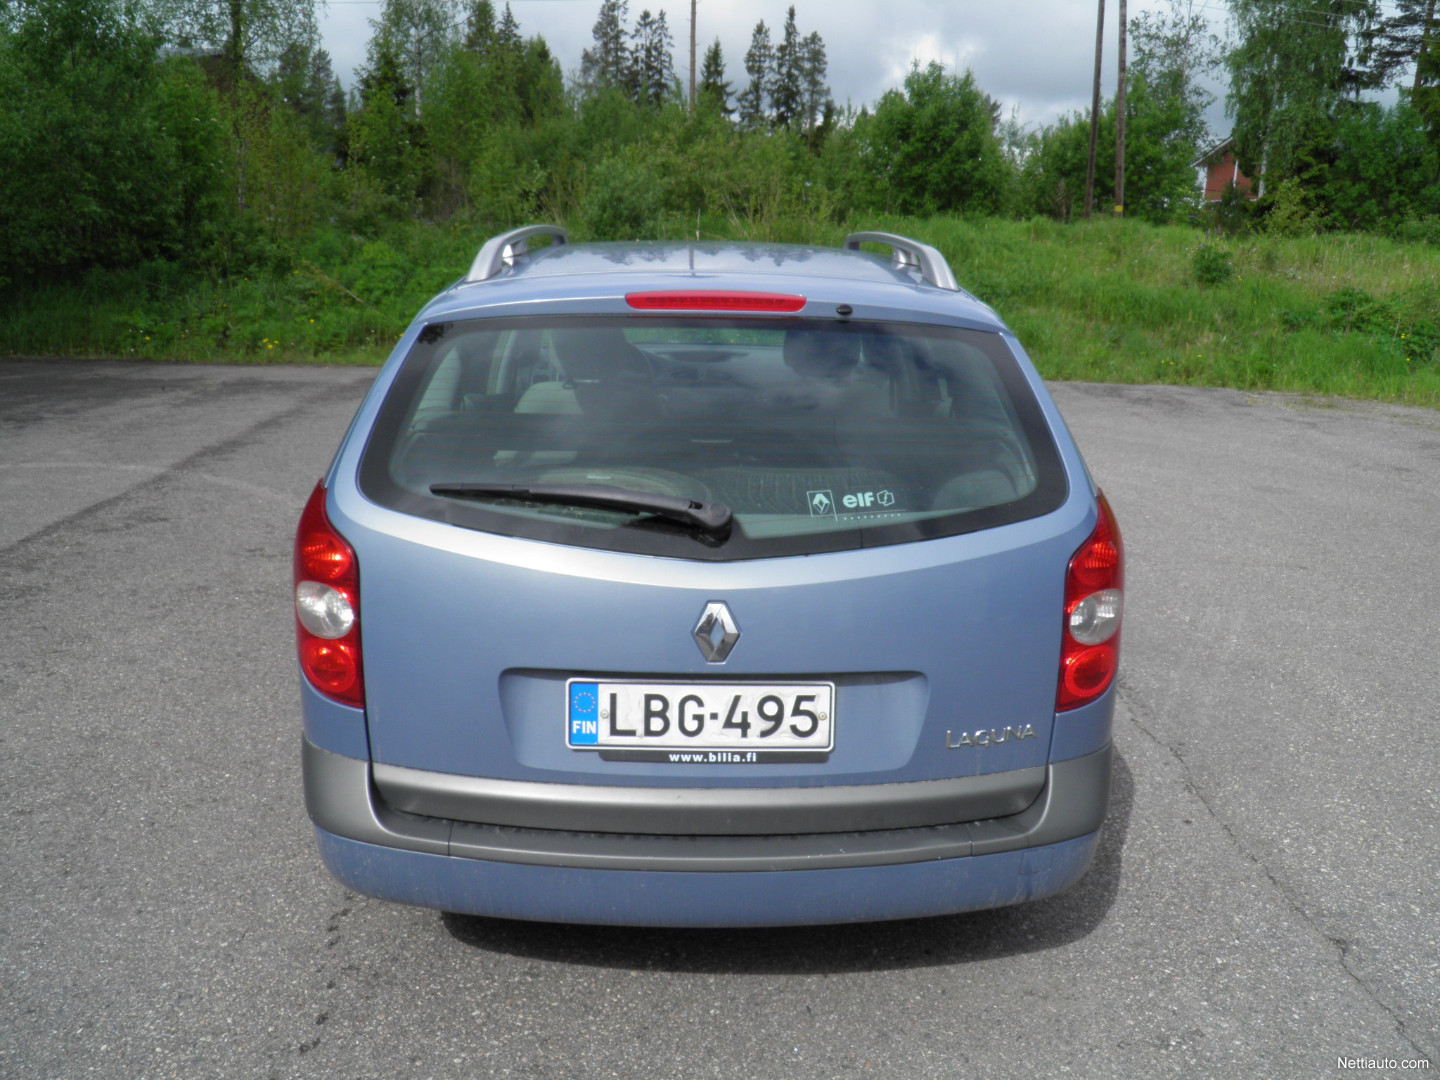 renault laguna 1 8 16v expression break juuri katsastettu jakop tehty 2 17 station wagon. Black Bedroom Furniture Sets. Home Design Ideas